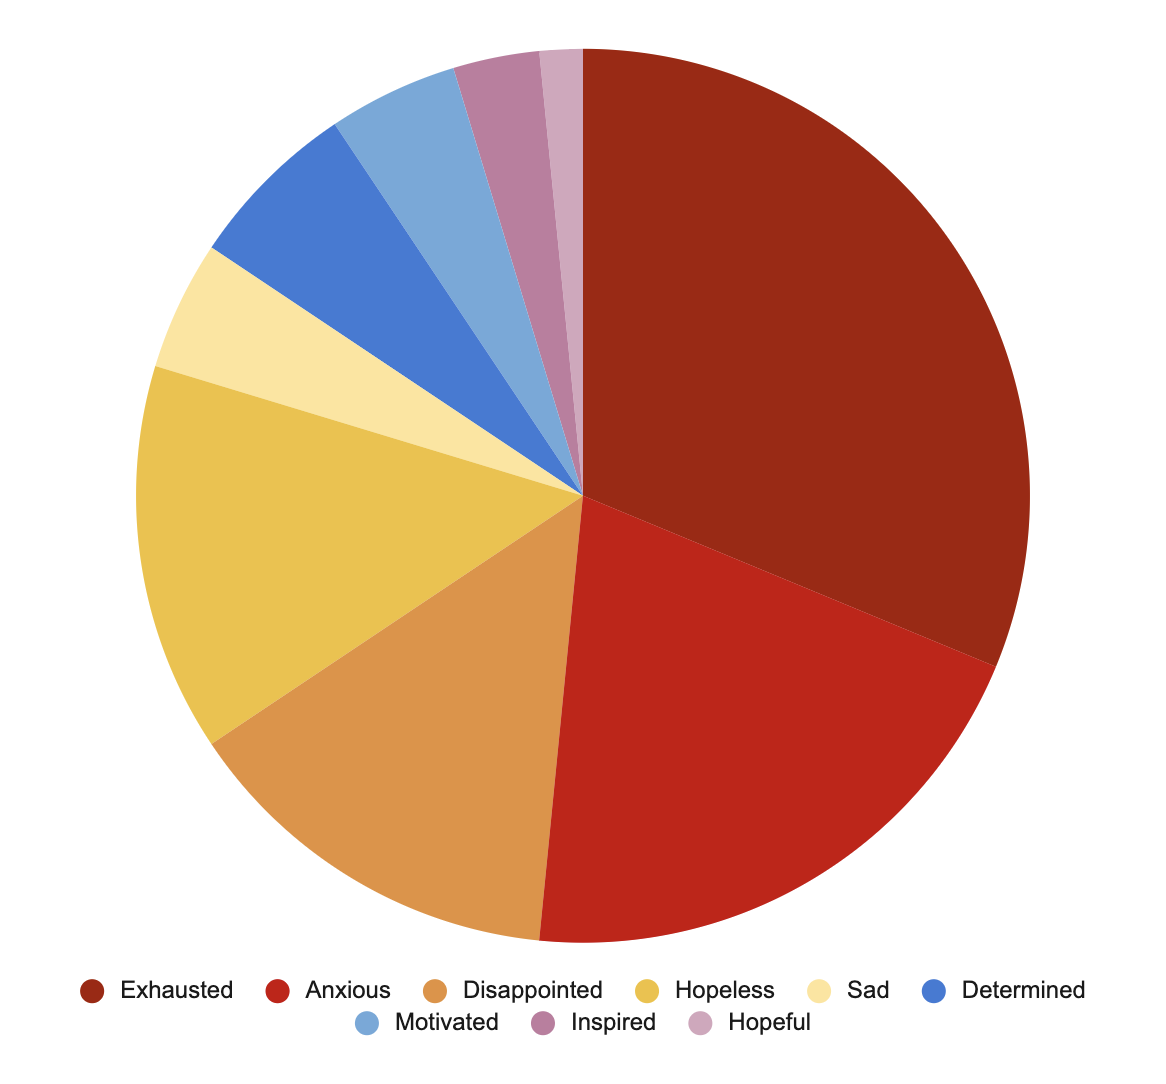 Pie chart shows feelings, in order to frequency (high to low): Exhausted, Anxious, Disappointed, Hopeless, Sad, Determined, Motivated, Inspired, Hopeful